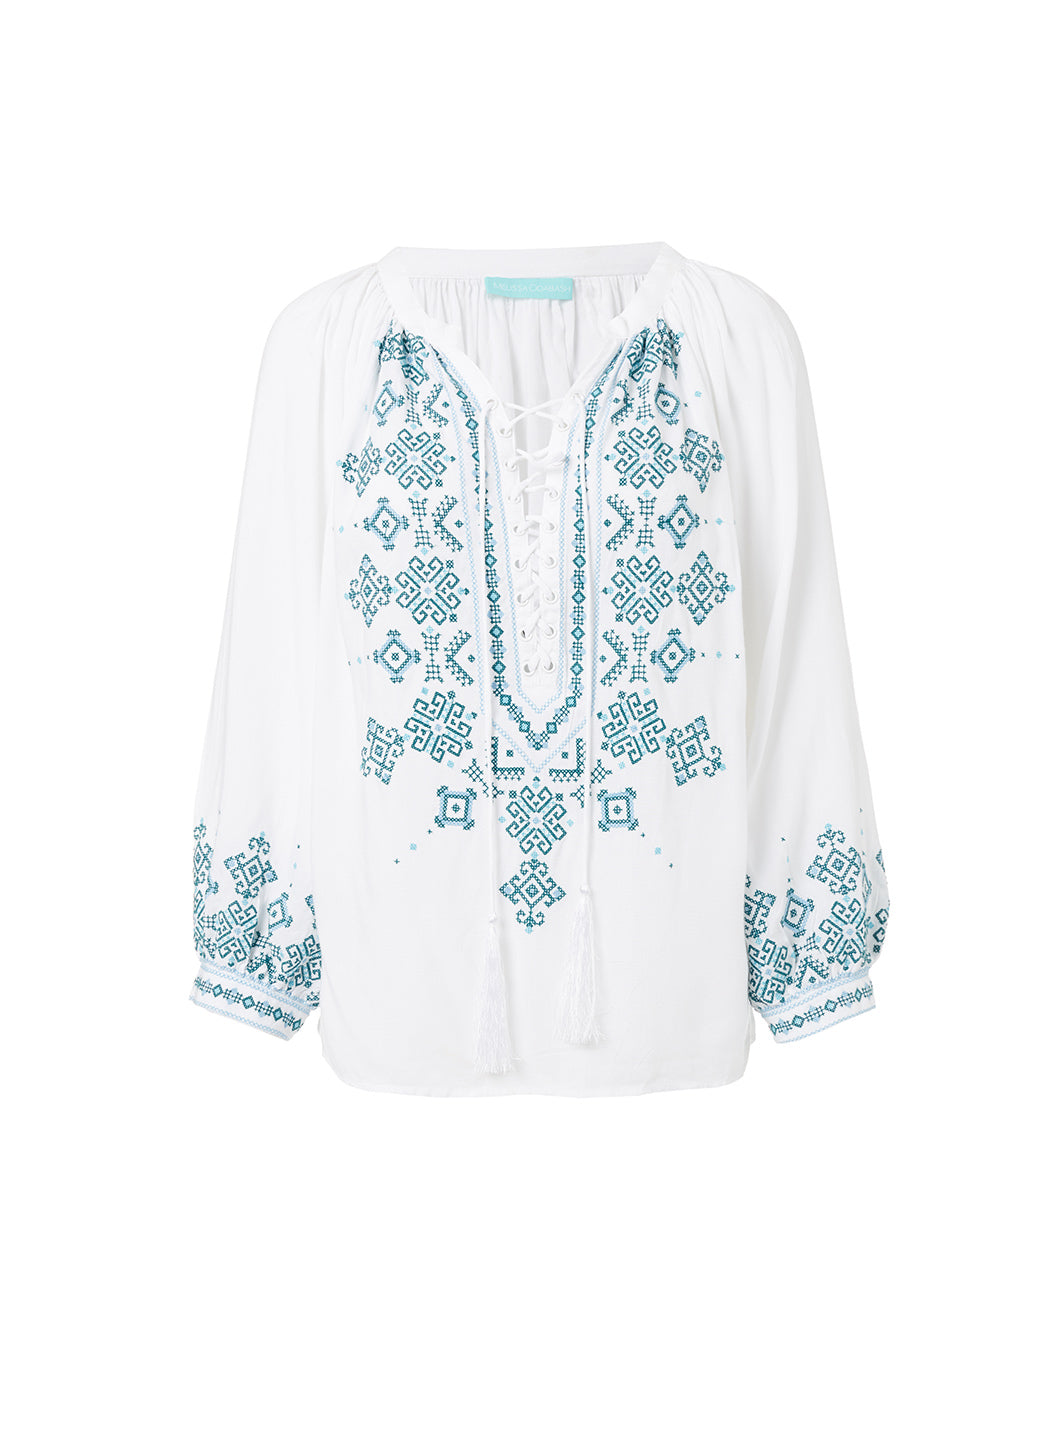 Shiv White/Mint Lace-Up Embroidered Blouse - Melissa Odabash Beachwear